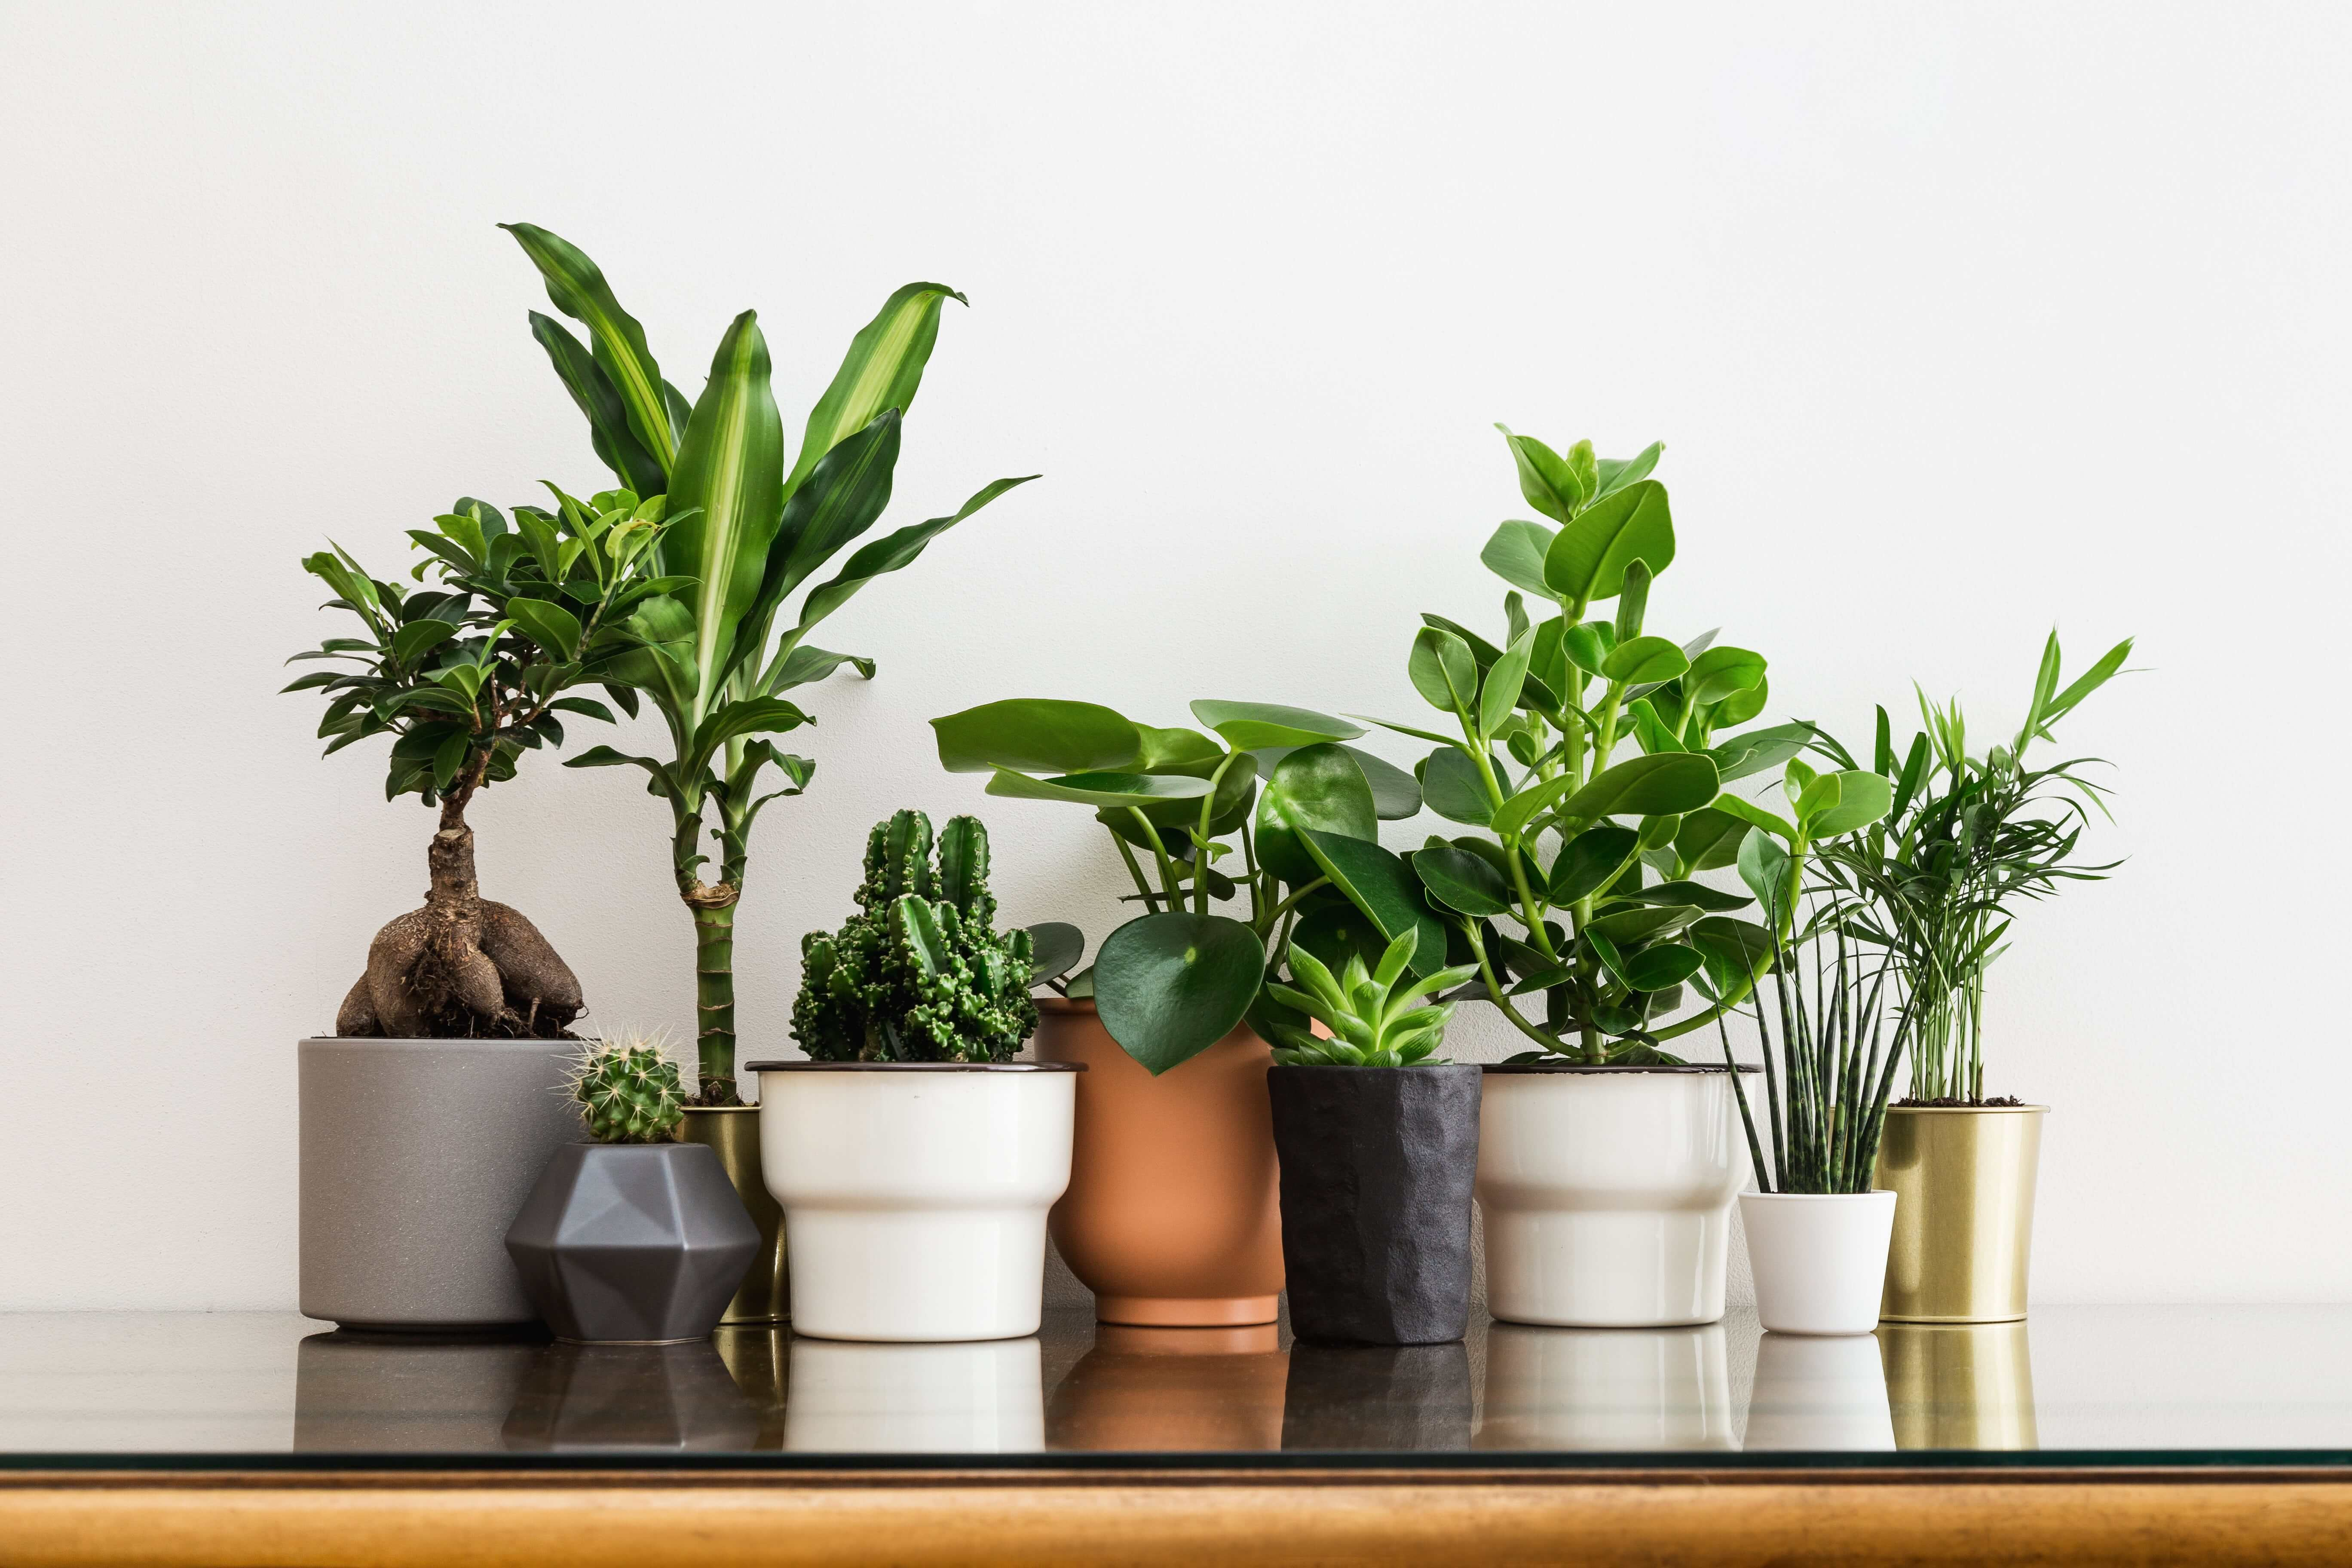 How to choose a right pot